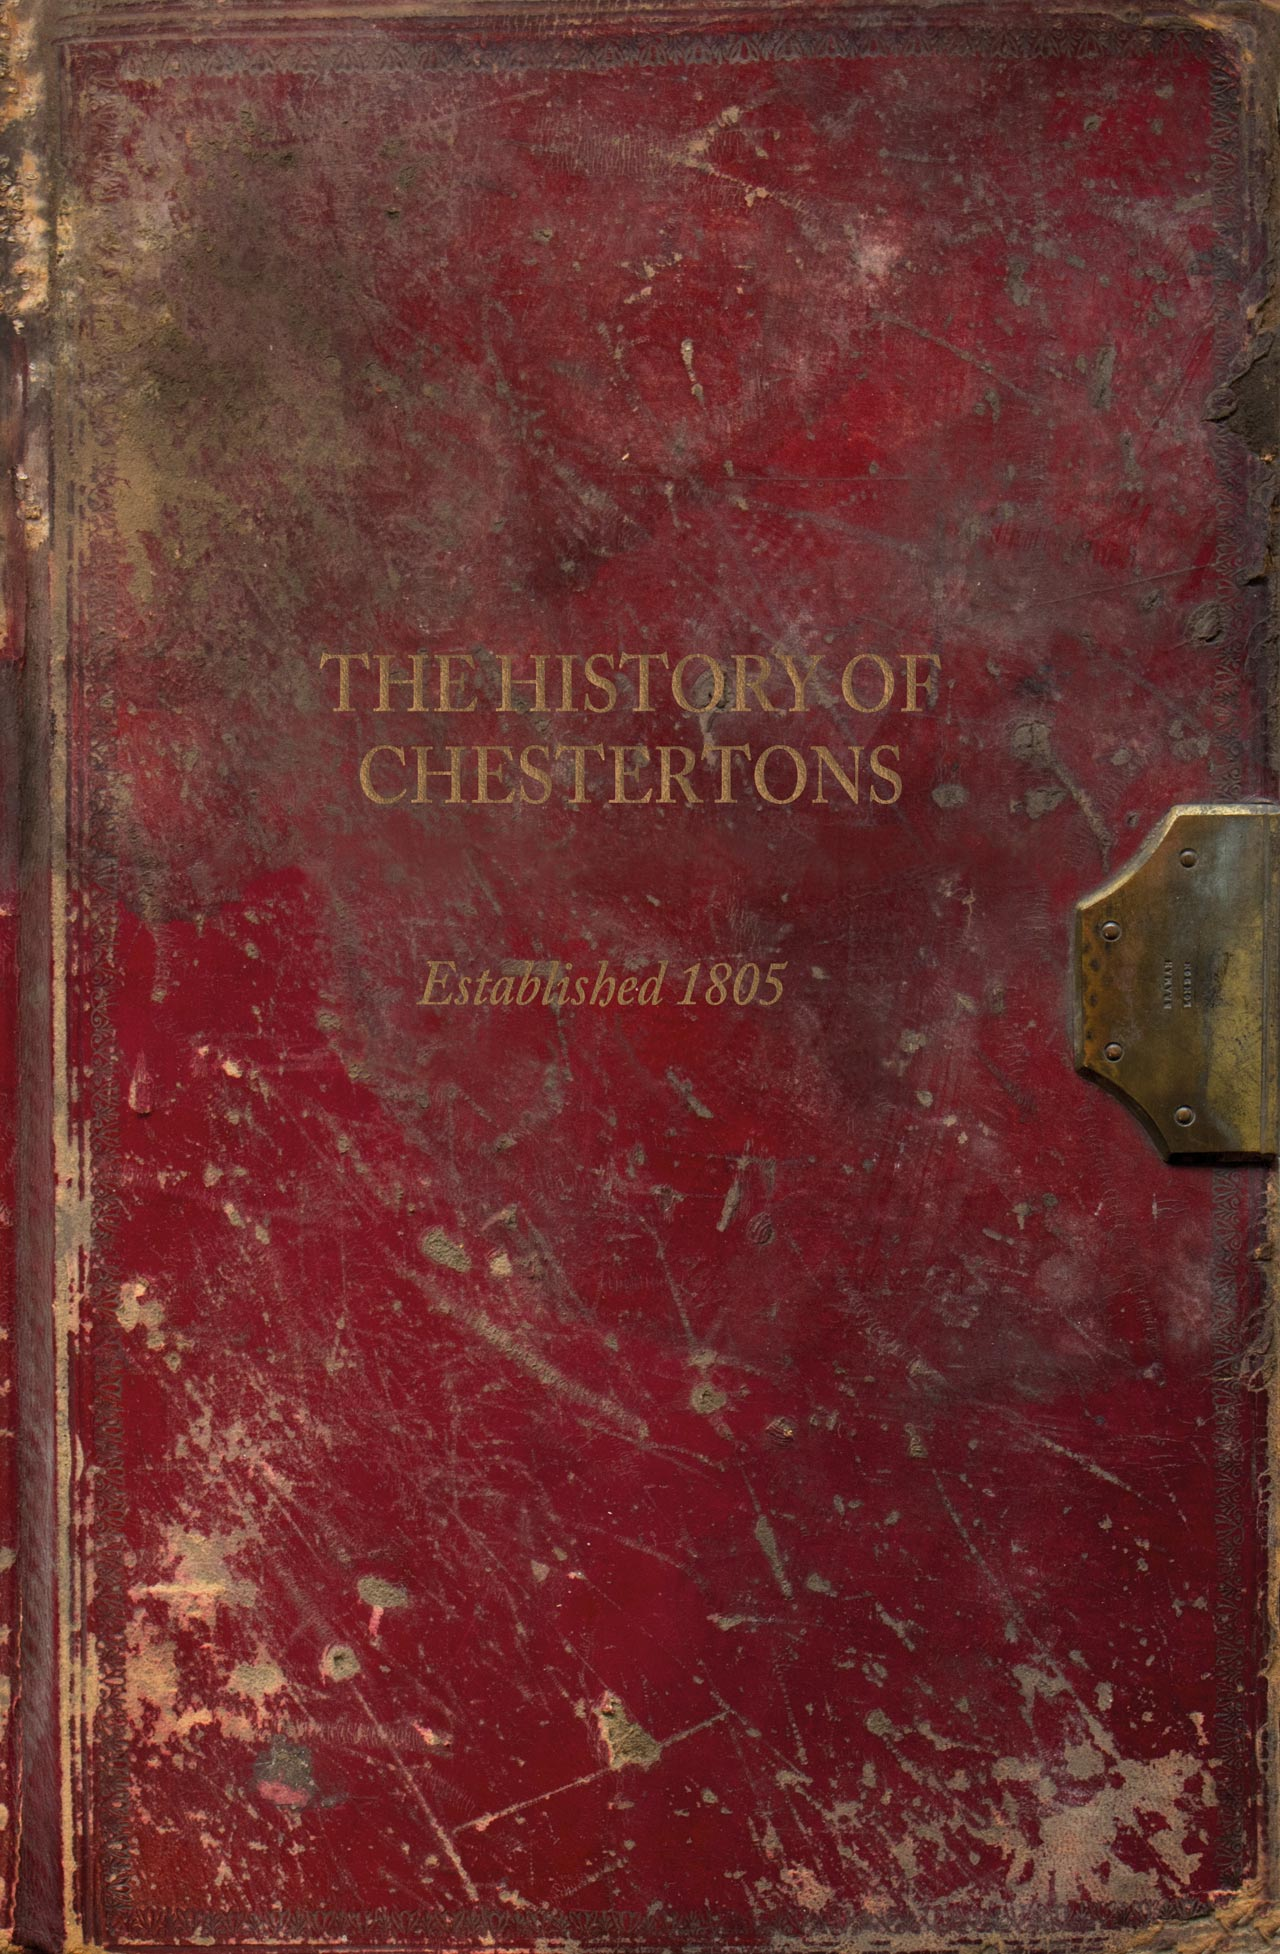 This History of Chersterons 1805